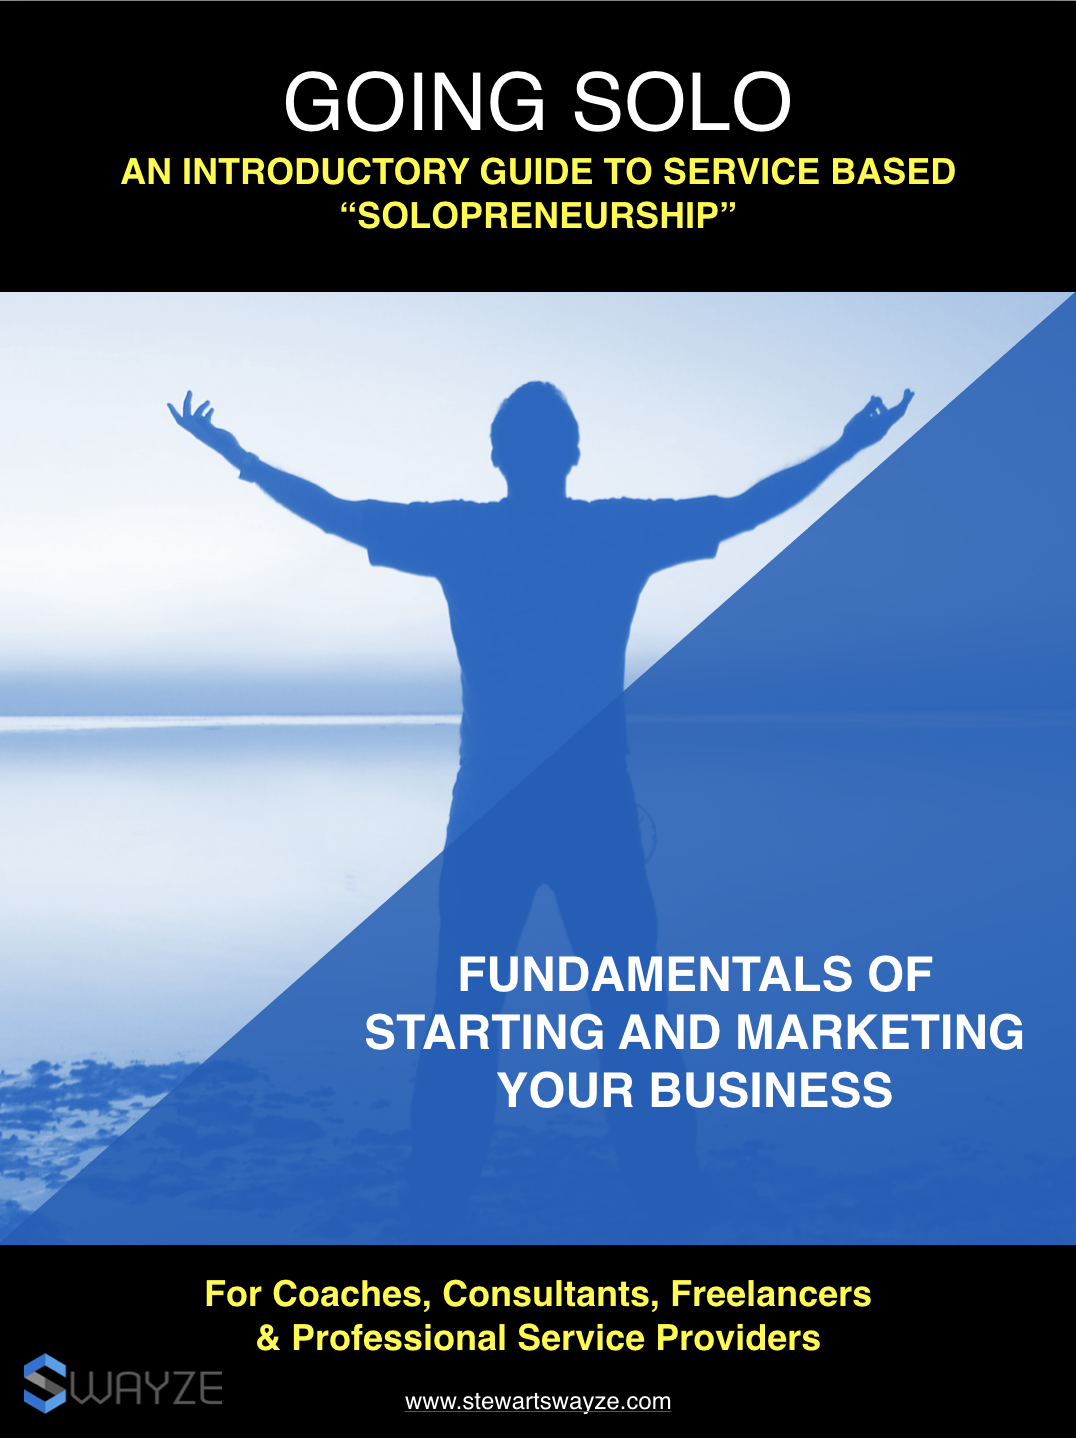 Going Solo Guide to Starting and Marketing Your Business